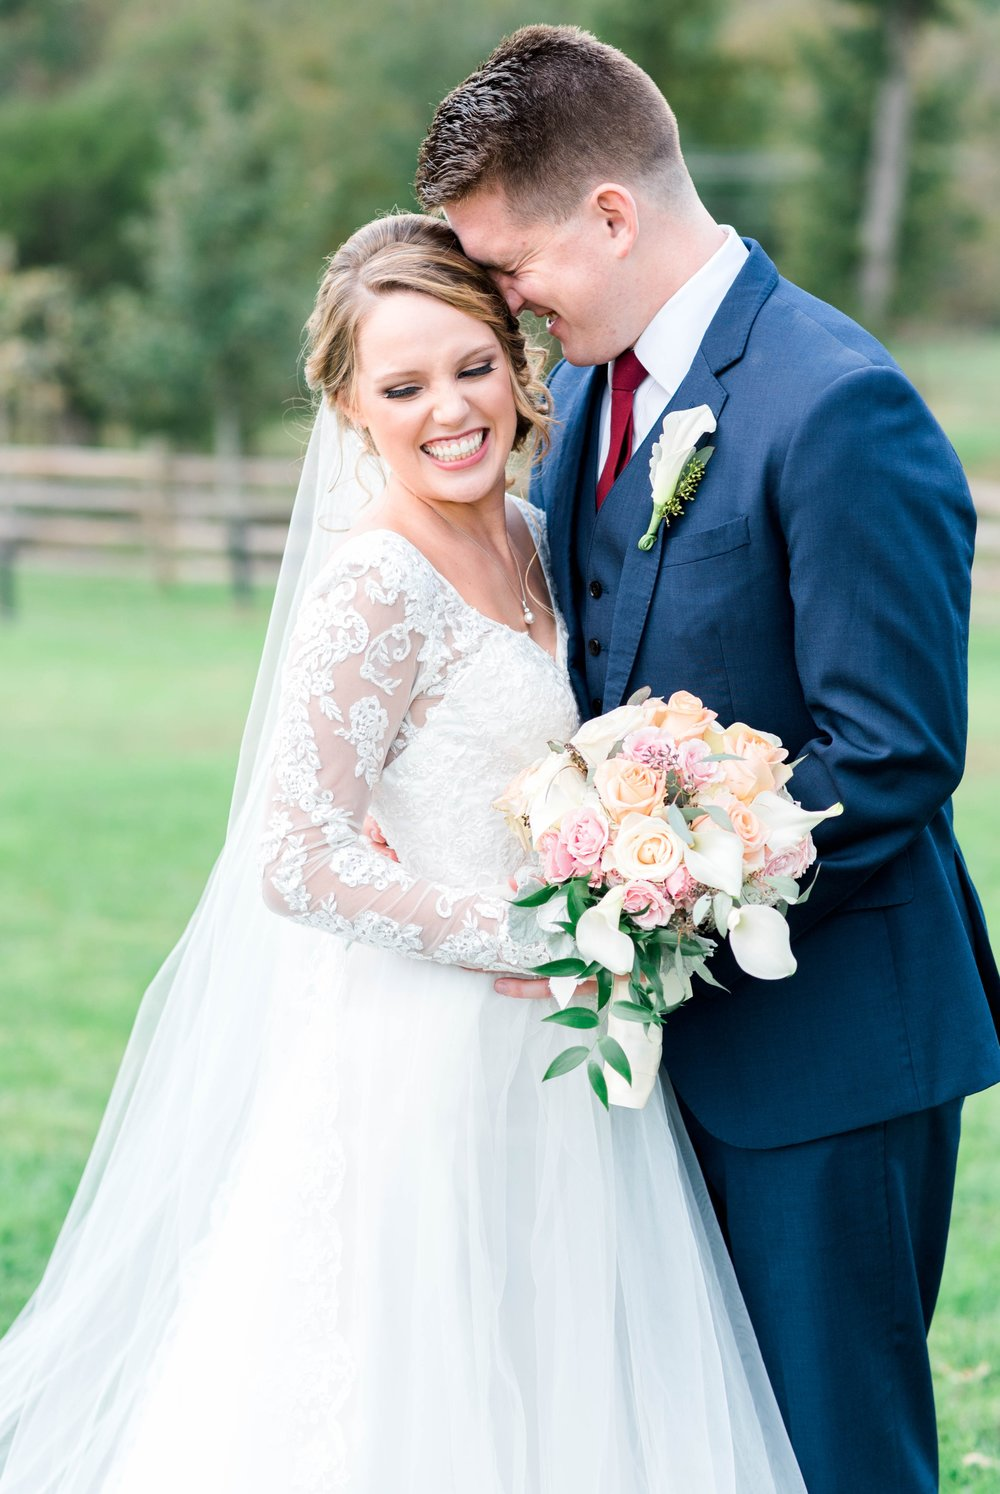 GrantElizabeth_wineryatbullrun_DCwedding_Virginiaweddingphotographer 11.jpg